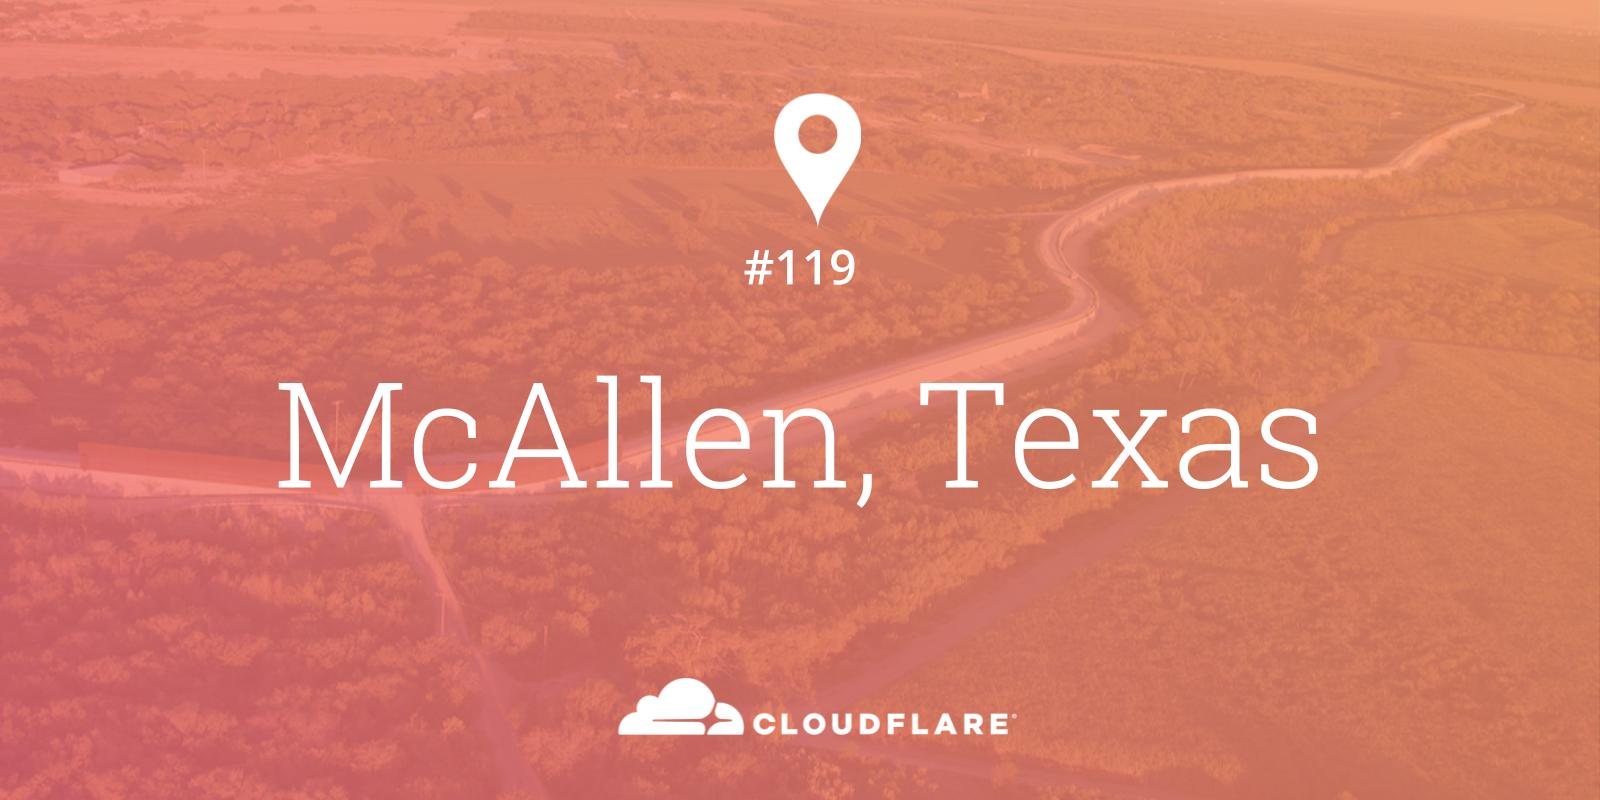 McAllen, Texas: Cloudflare opens 119th Data Center just north of the Mexico border